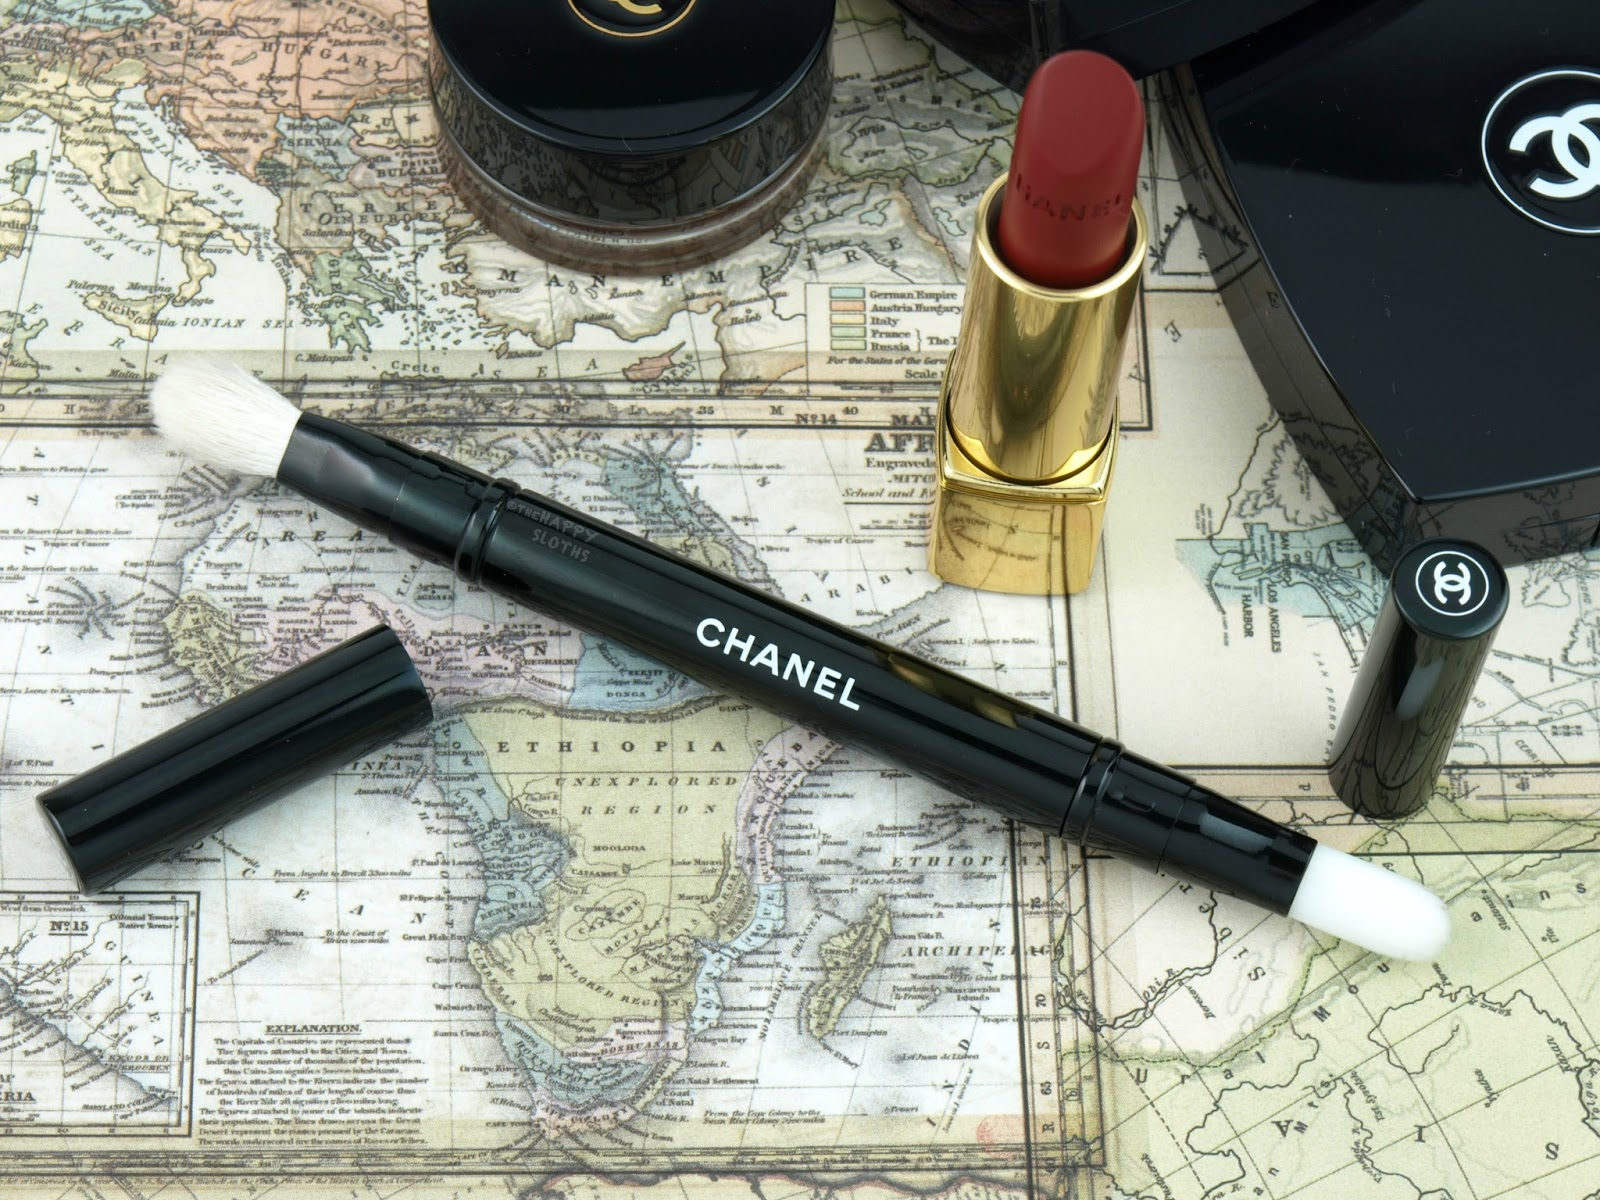 Chanel Fall 2017 Travel Diary Collection: Review and Swatches | The Happy Sloths: Beauty ...